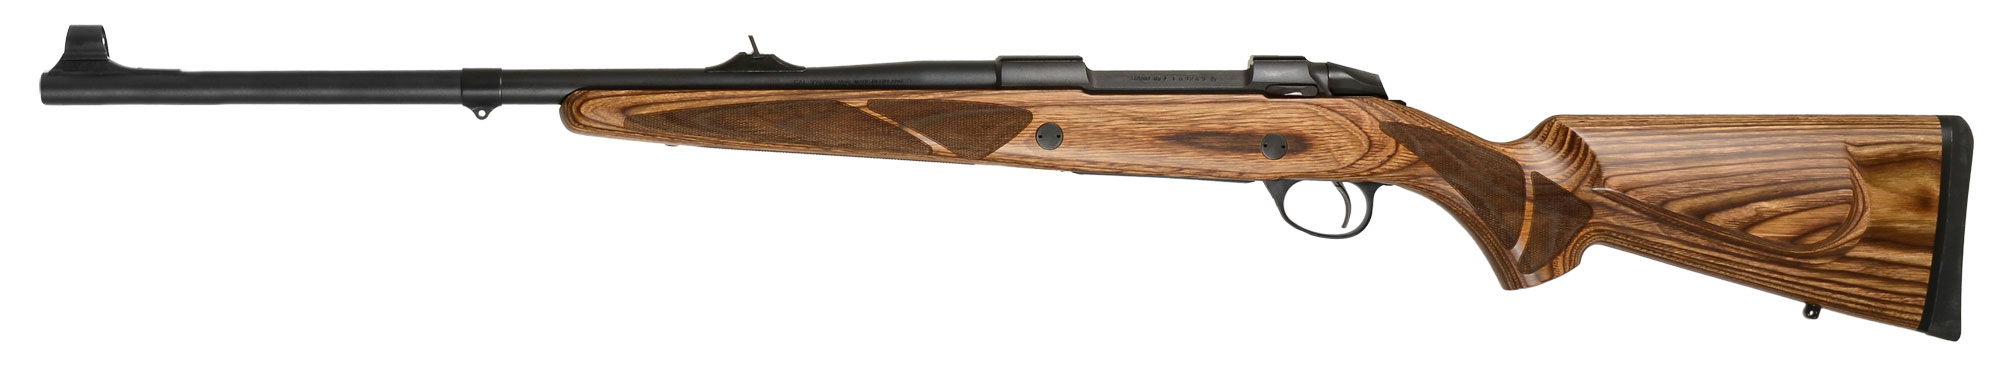 Sako Brown Bear .338 Win. Mag Rifle JRSA534